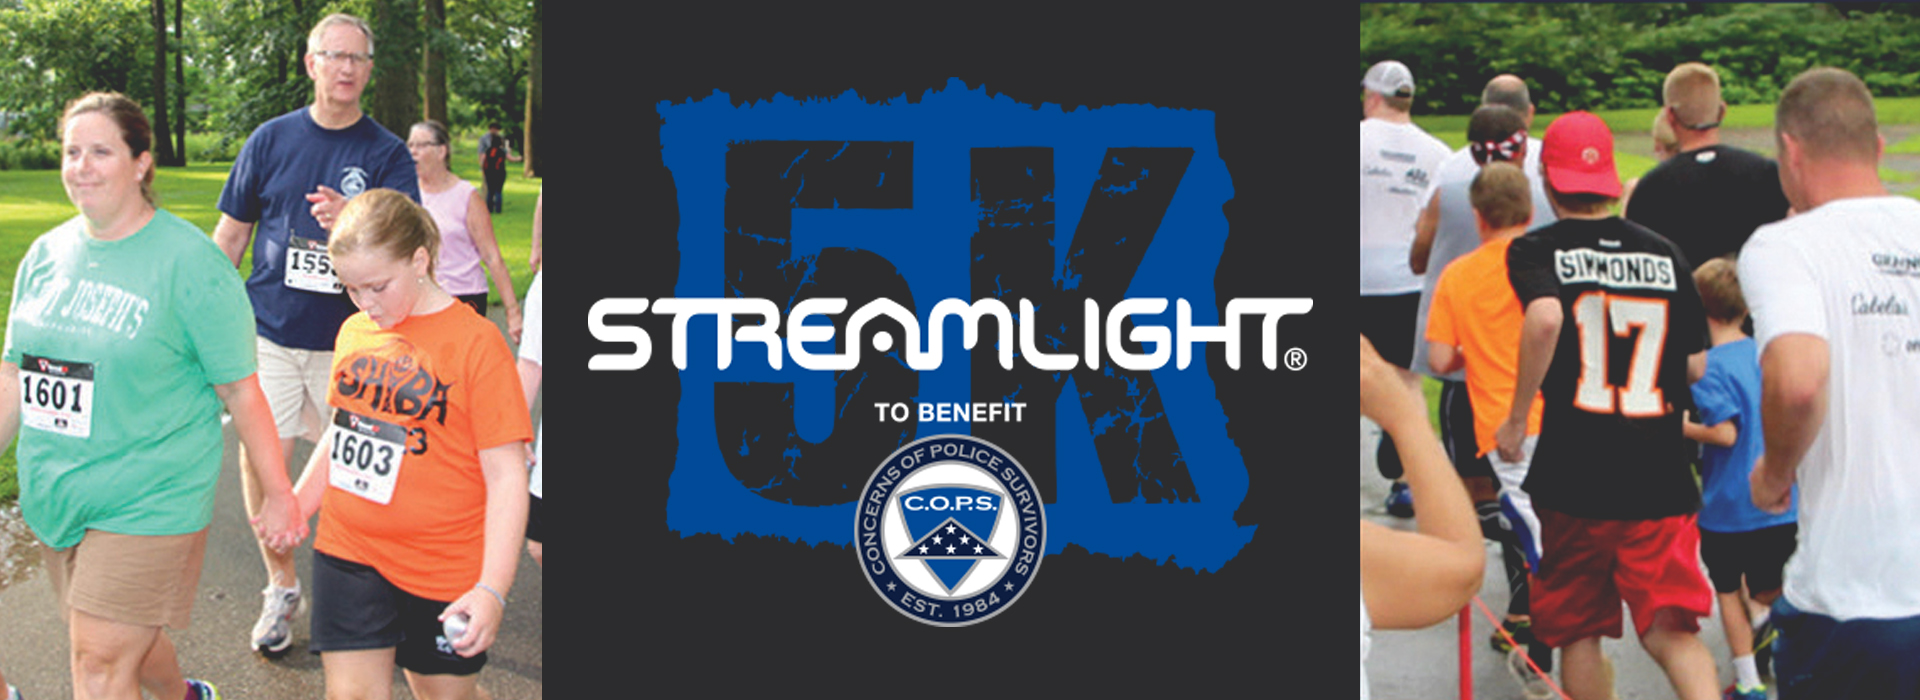 Streamlight 5K 2019